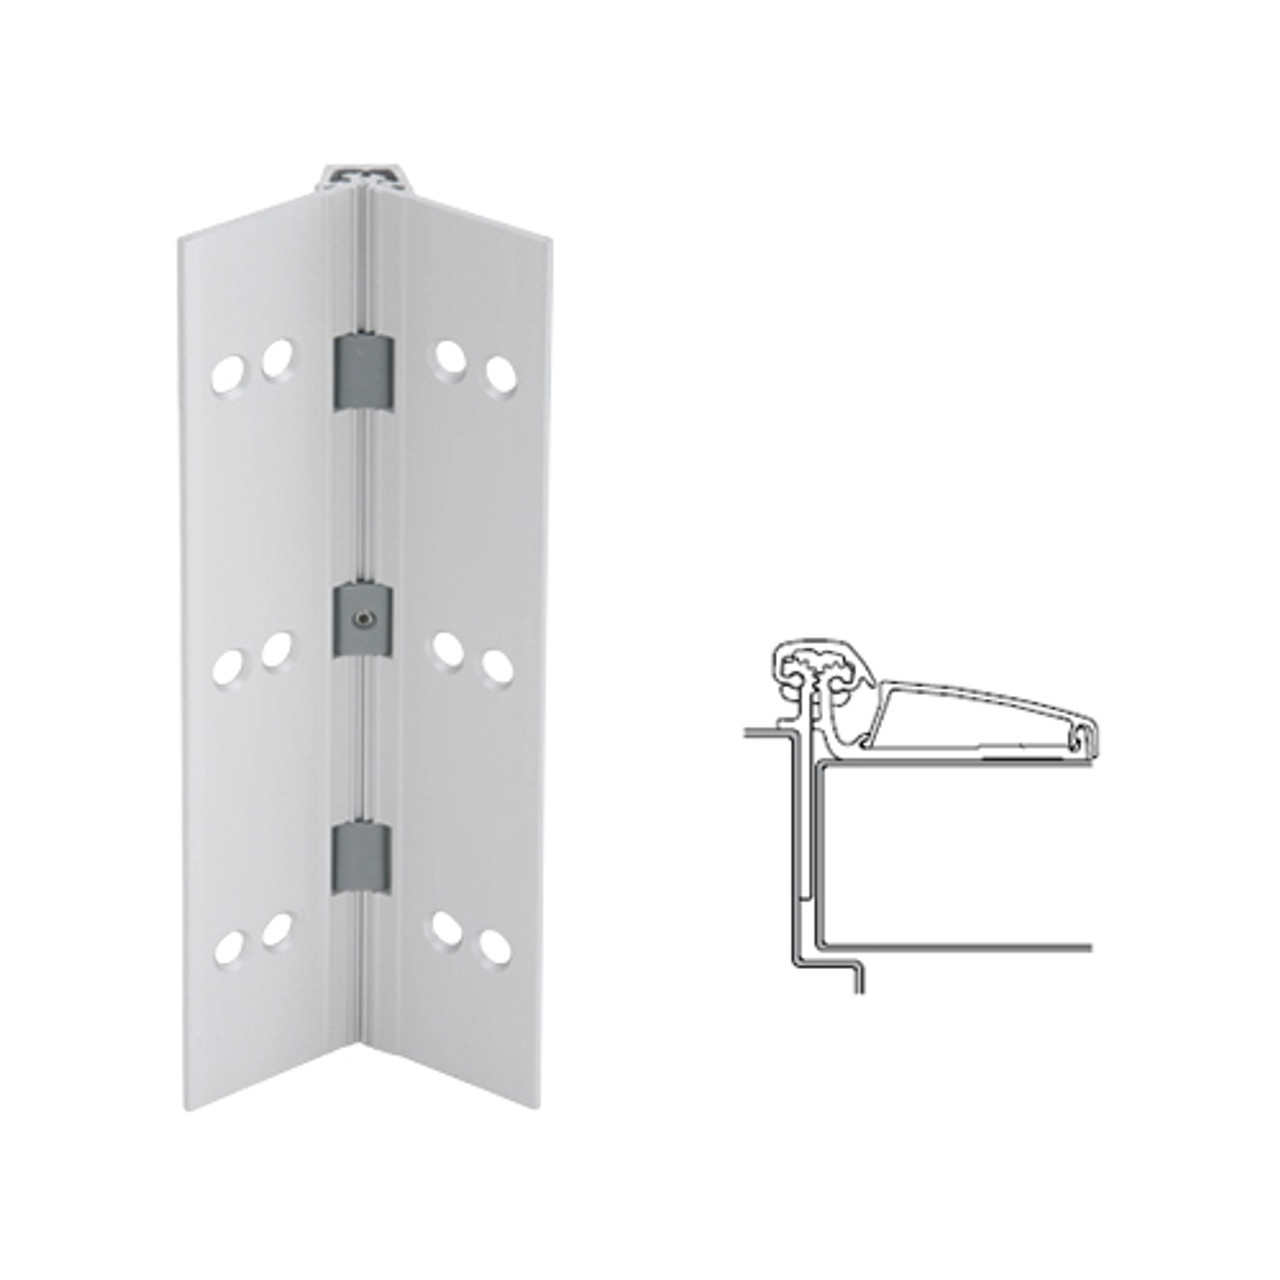 045XY-US28-83-TEKWD IVES Adjustable Half Surface Continuous Geared Hinges with Wood Screws in Satin Aluminum